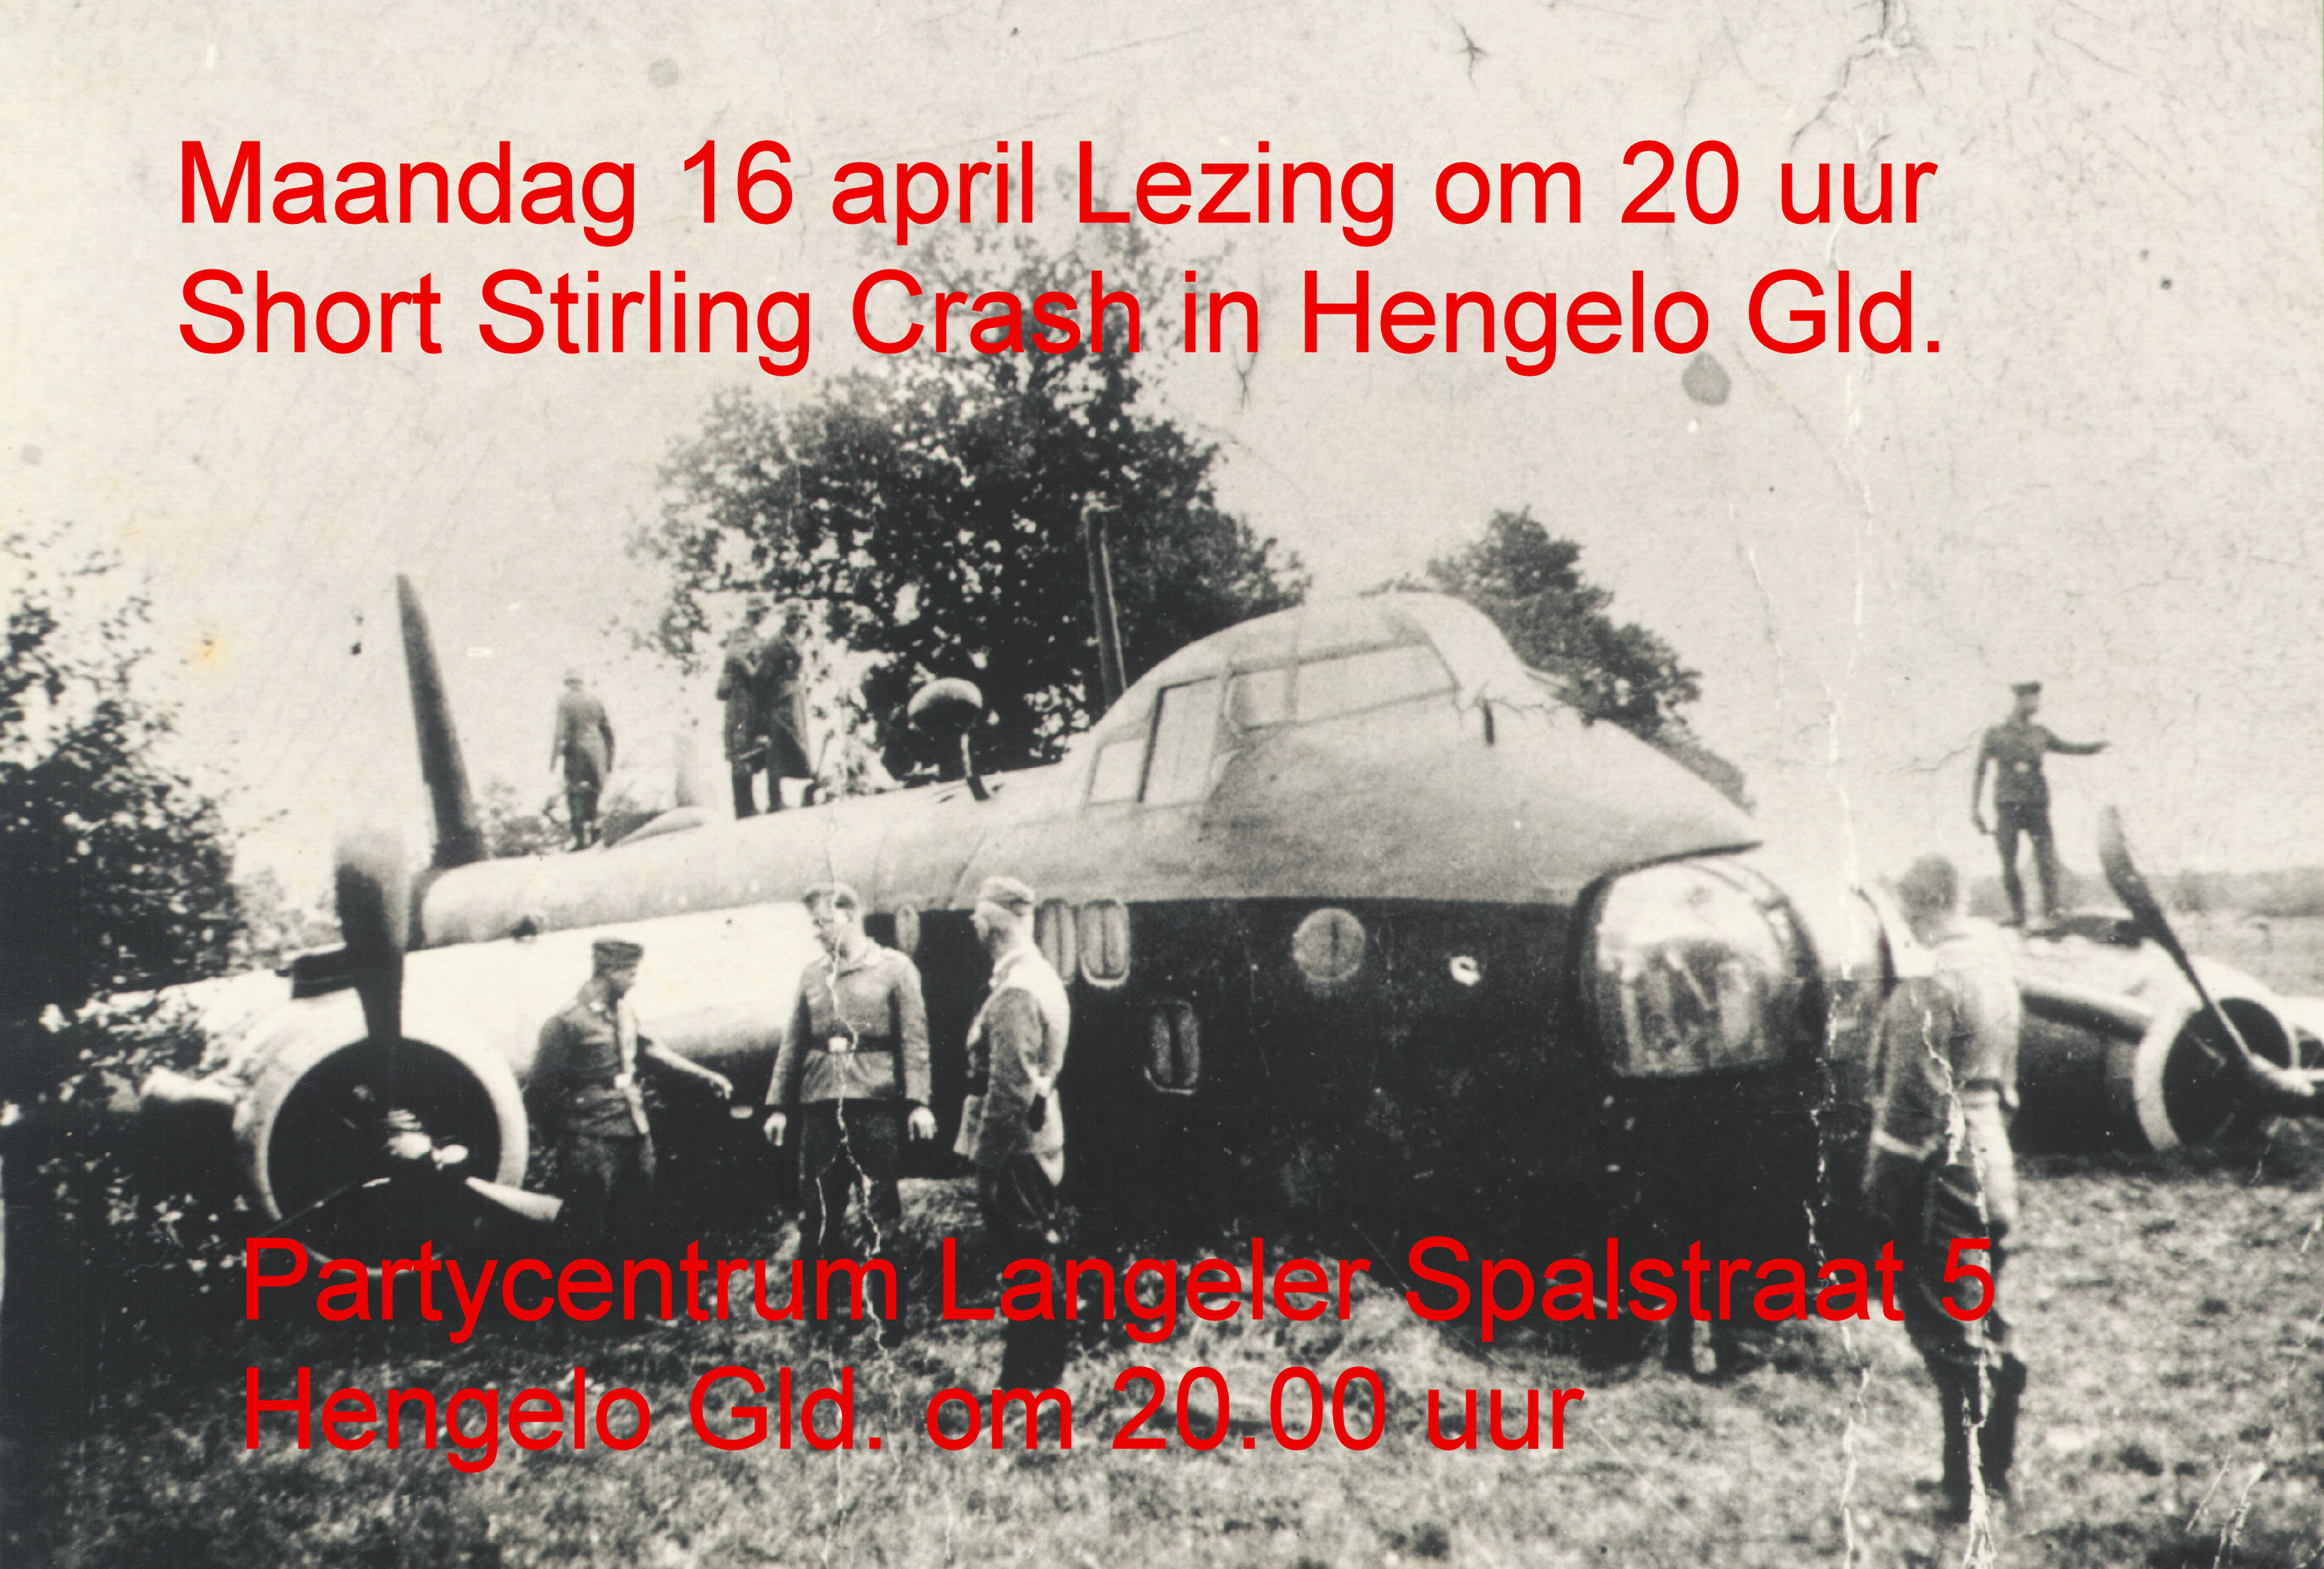 Lezing over de Short Stirling bommenwerper crash op 8 9 1941 te Hengelo Gld.